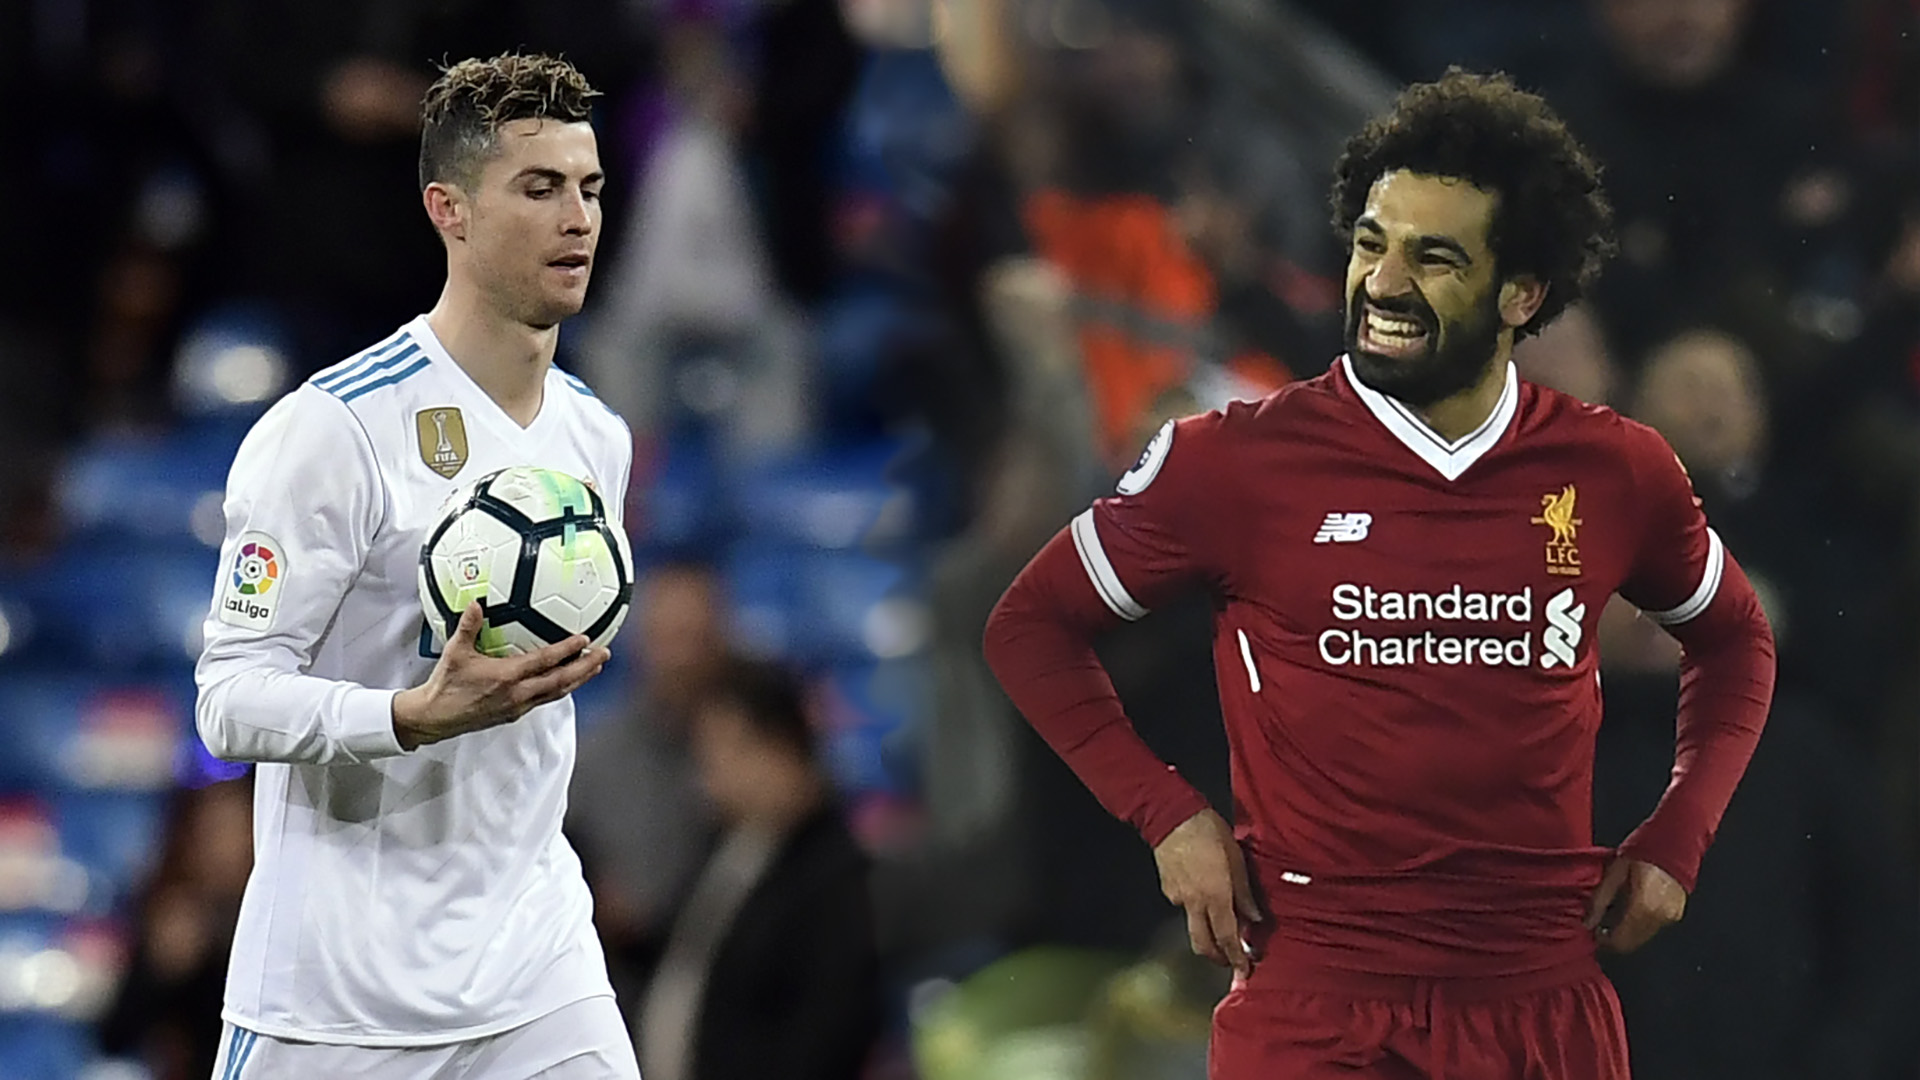 Ian Rush says Mohamed Salah can break his 47-goal Liverpool record